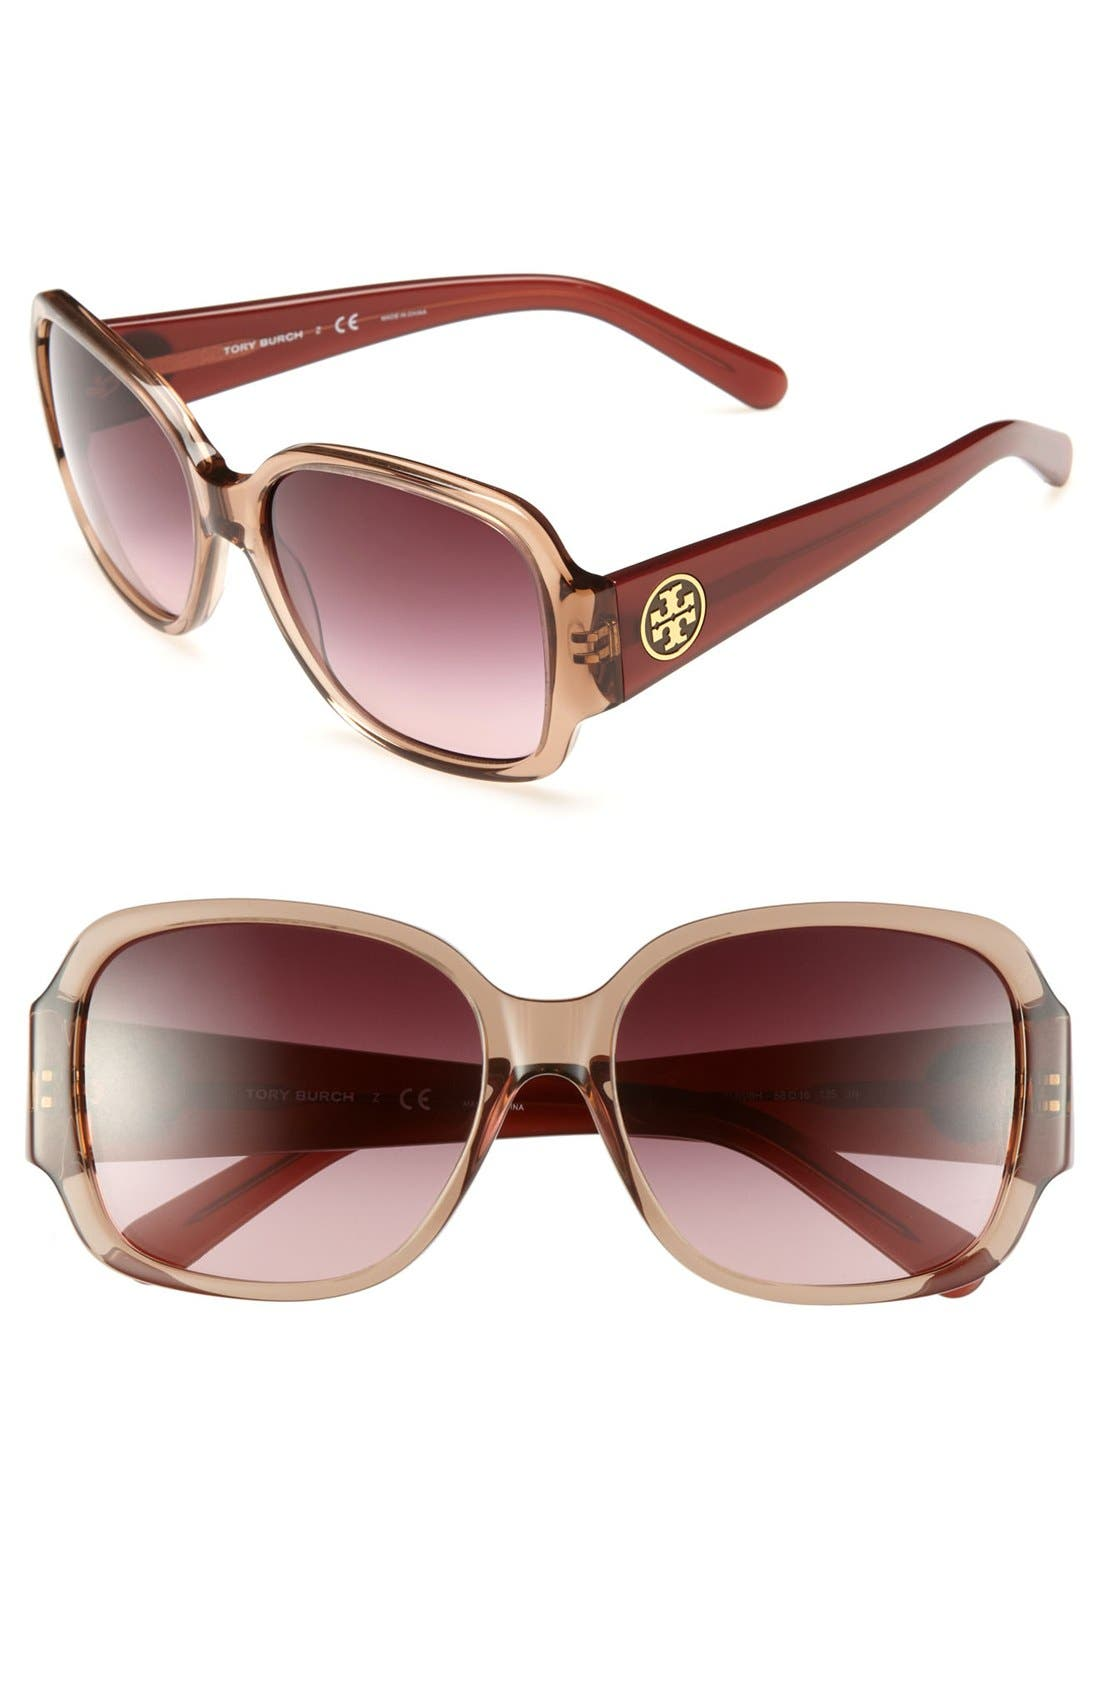 Alternate Image 1 Selected - Tory Burch 'Glam' 58mm Sunglasses